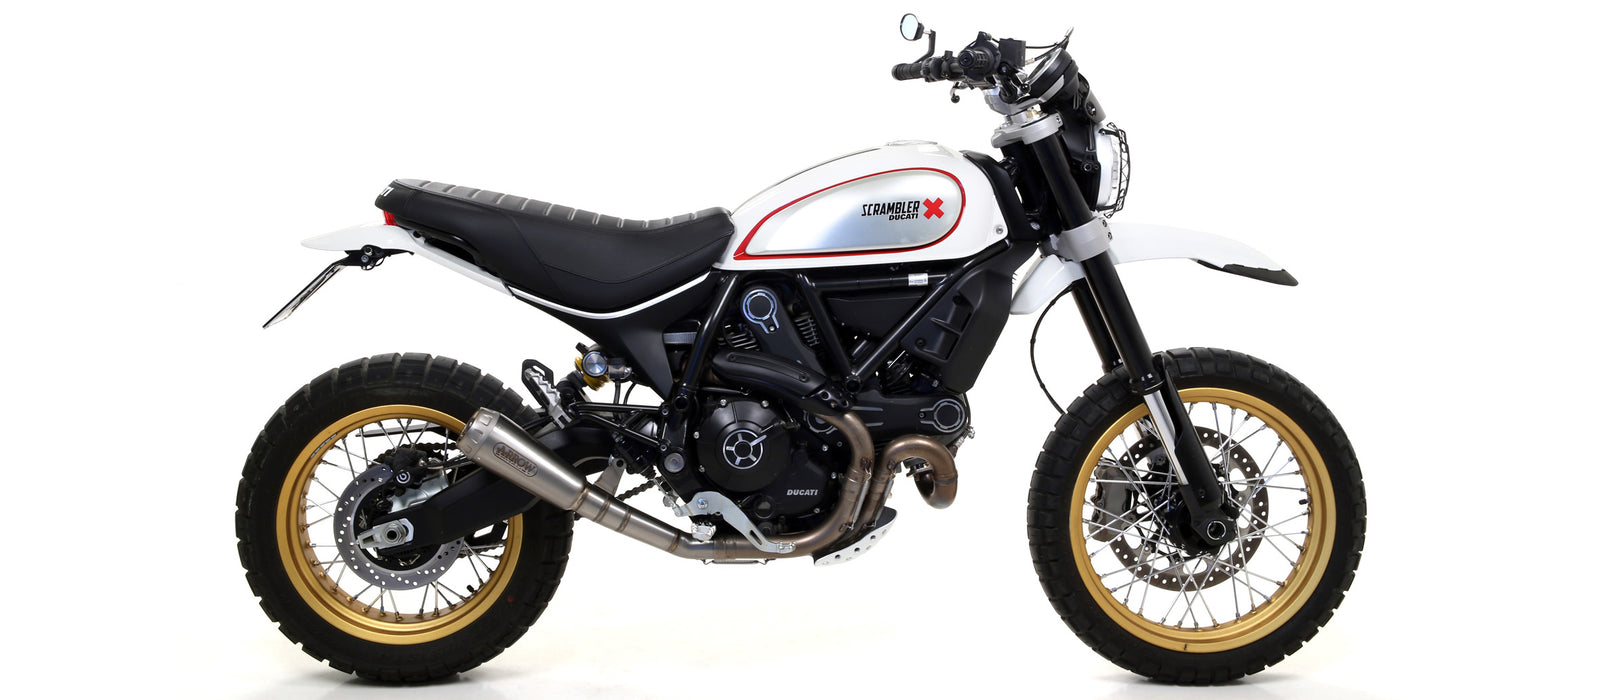 Arrow Pro-Race Titanium Exhaust for Ducati Scrambler